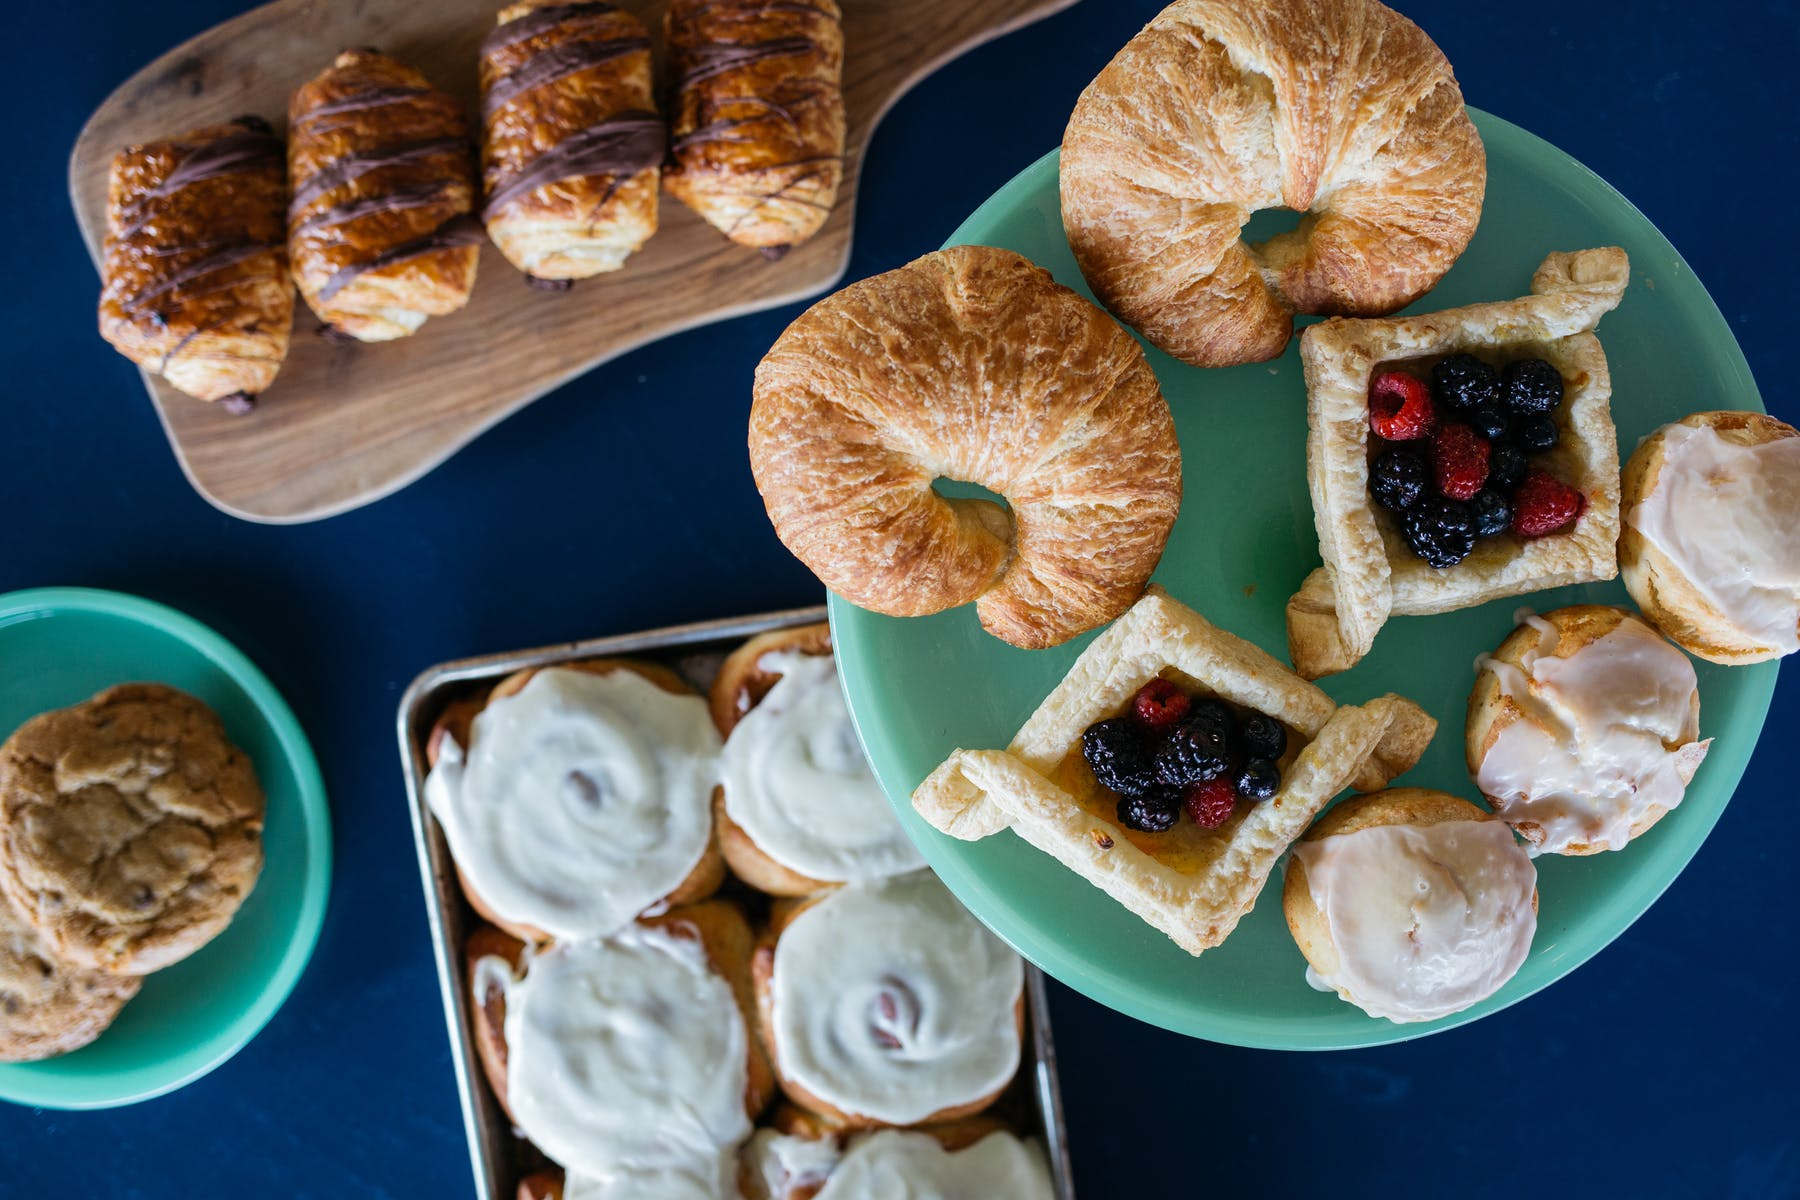 Pastries, Magnolia, Farm to Table, Southern Cuisine, Breakfast, Brunch, Lunch, Corey McEntyre, Magnolia Market